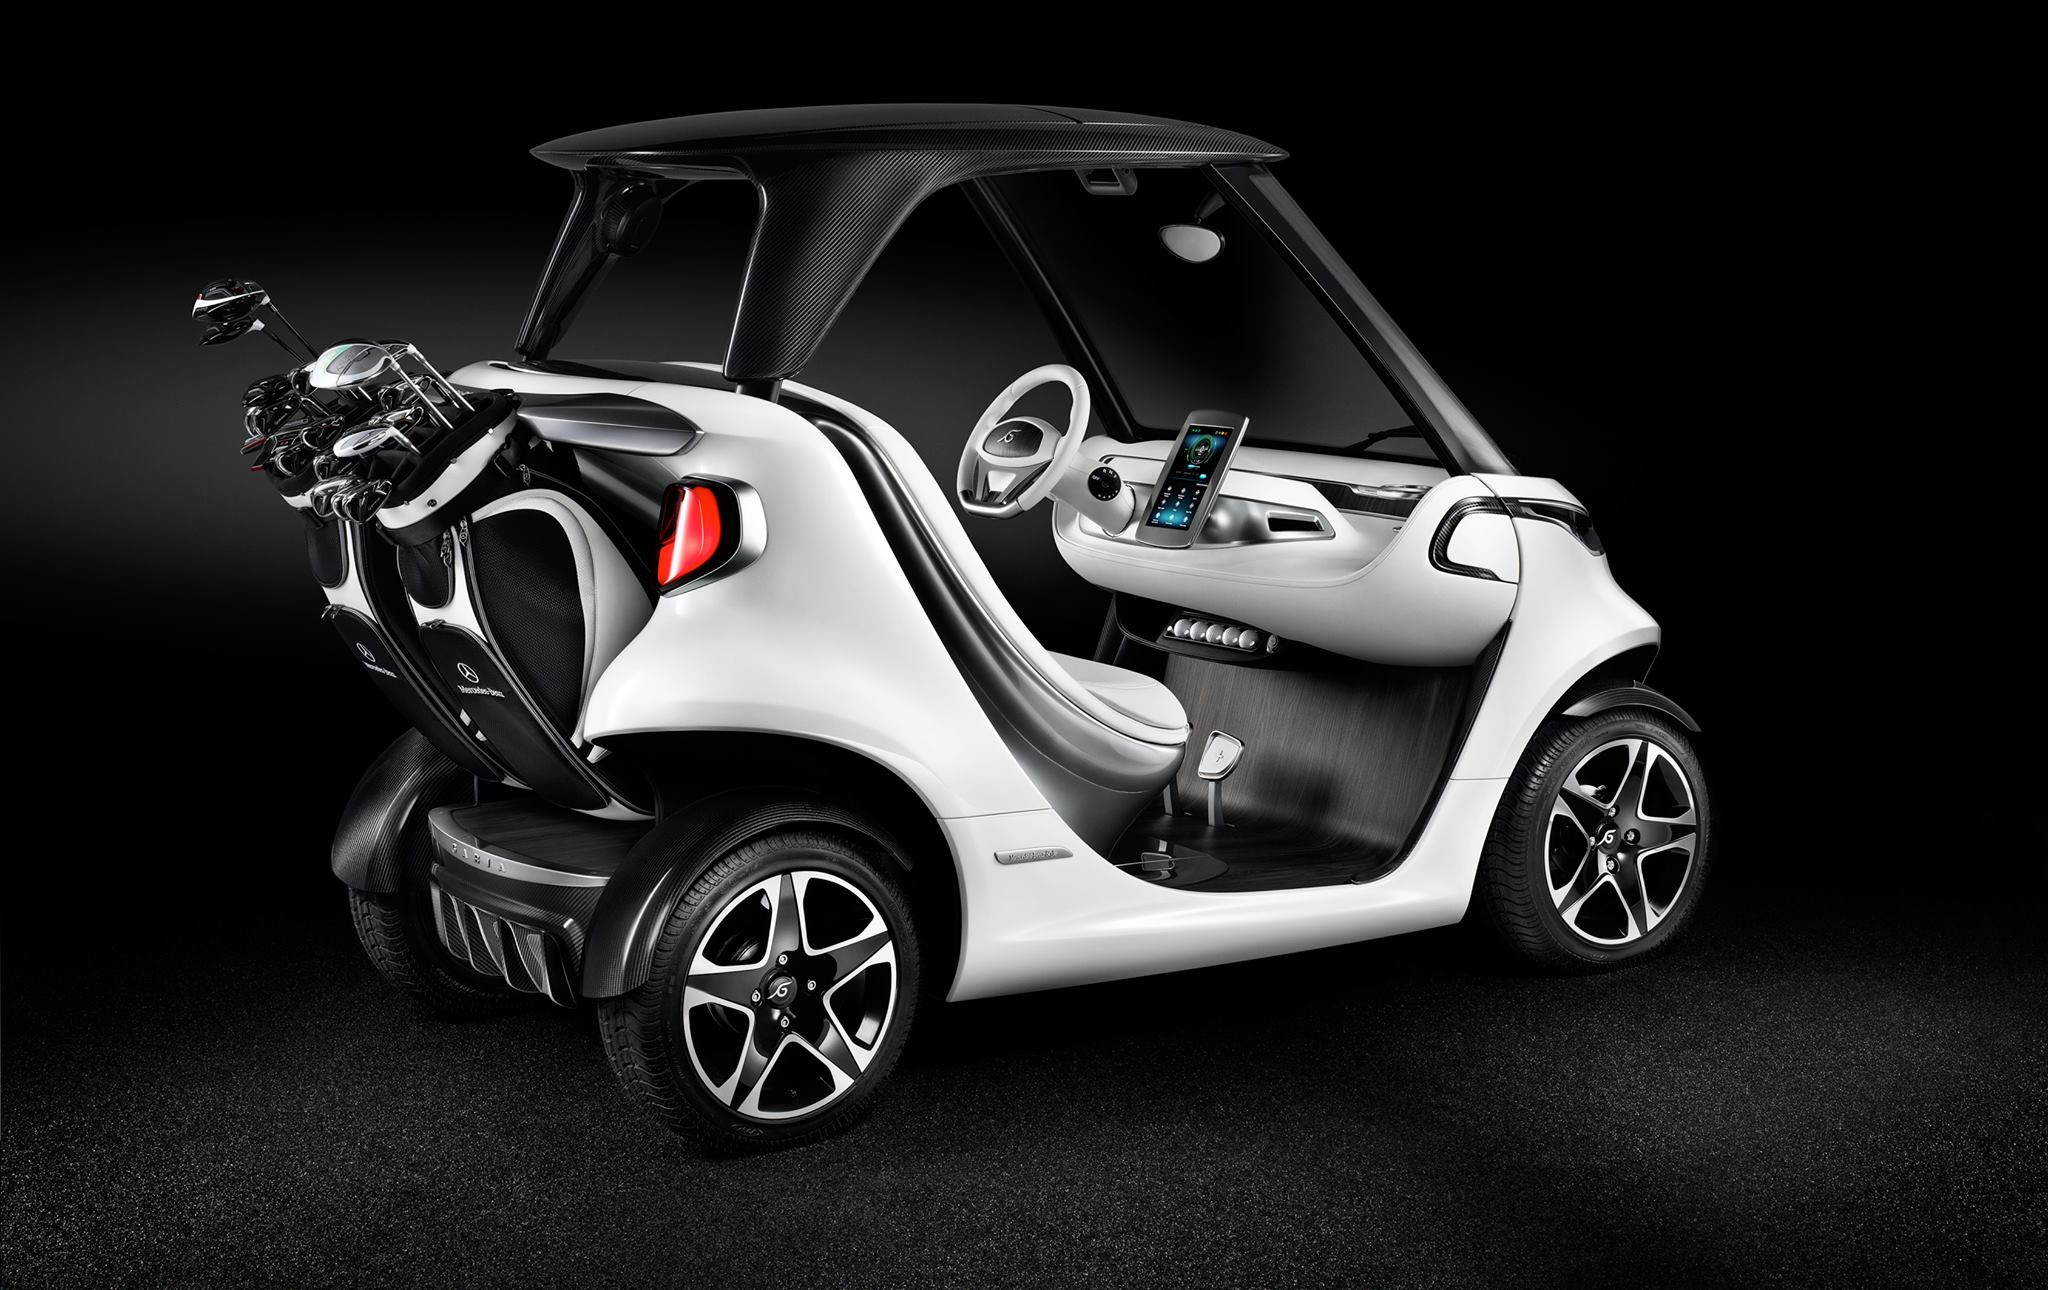 Mercedes-Benz unveiled a new luxury golf cart, the Mercedes-Benz Style Edition Garia Golf Car, at the British Open at Royal Toon.